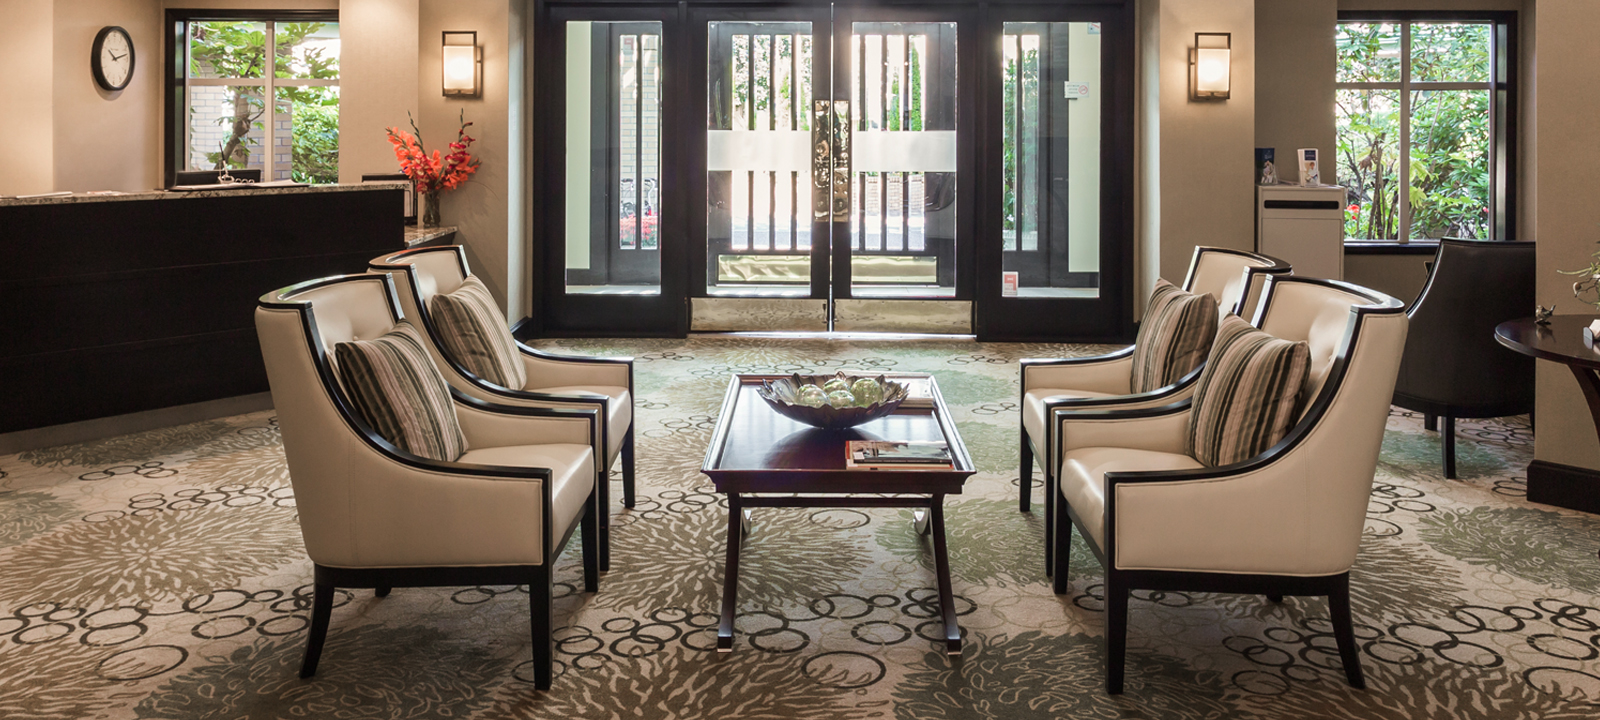 Main lobby at Amica Beechwood Village senior living residence.